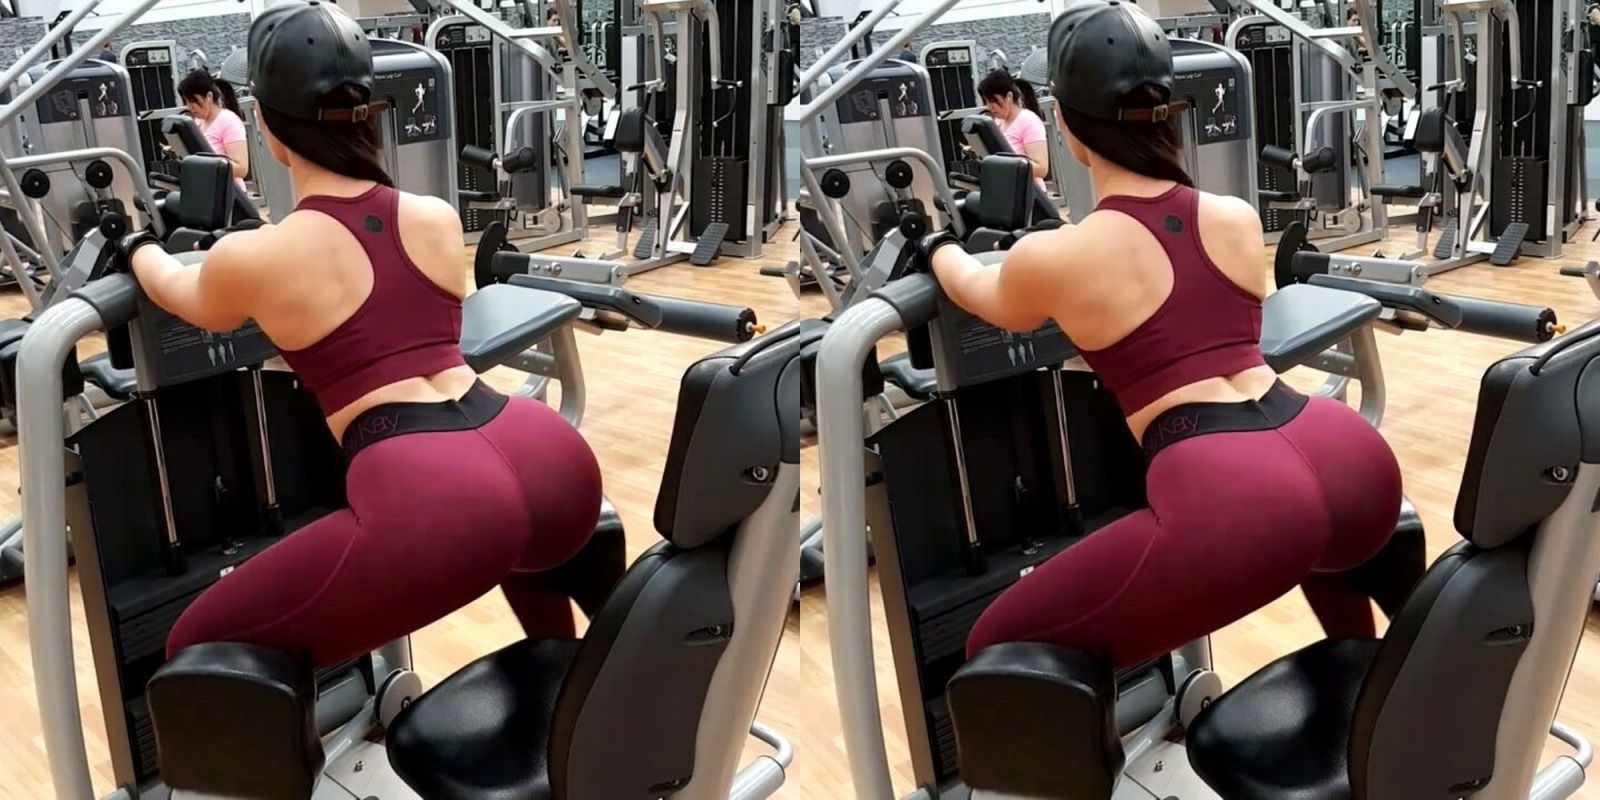 Teen girls that fuck gym eqement